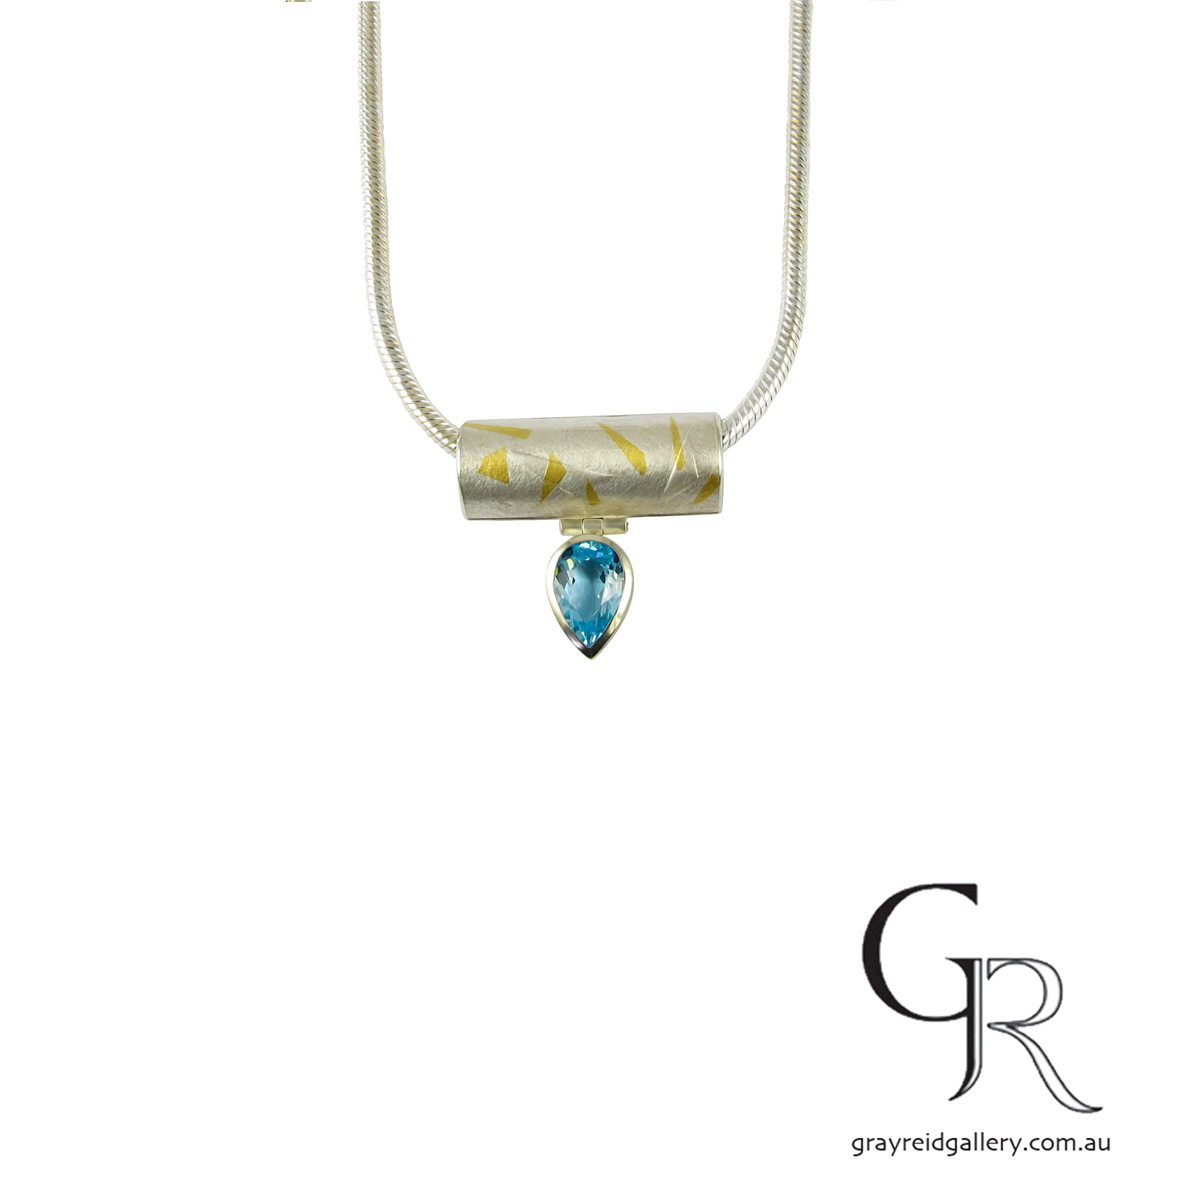 Blue Topaz Necklace by Monica Szwaja